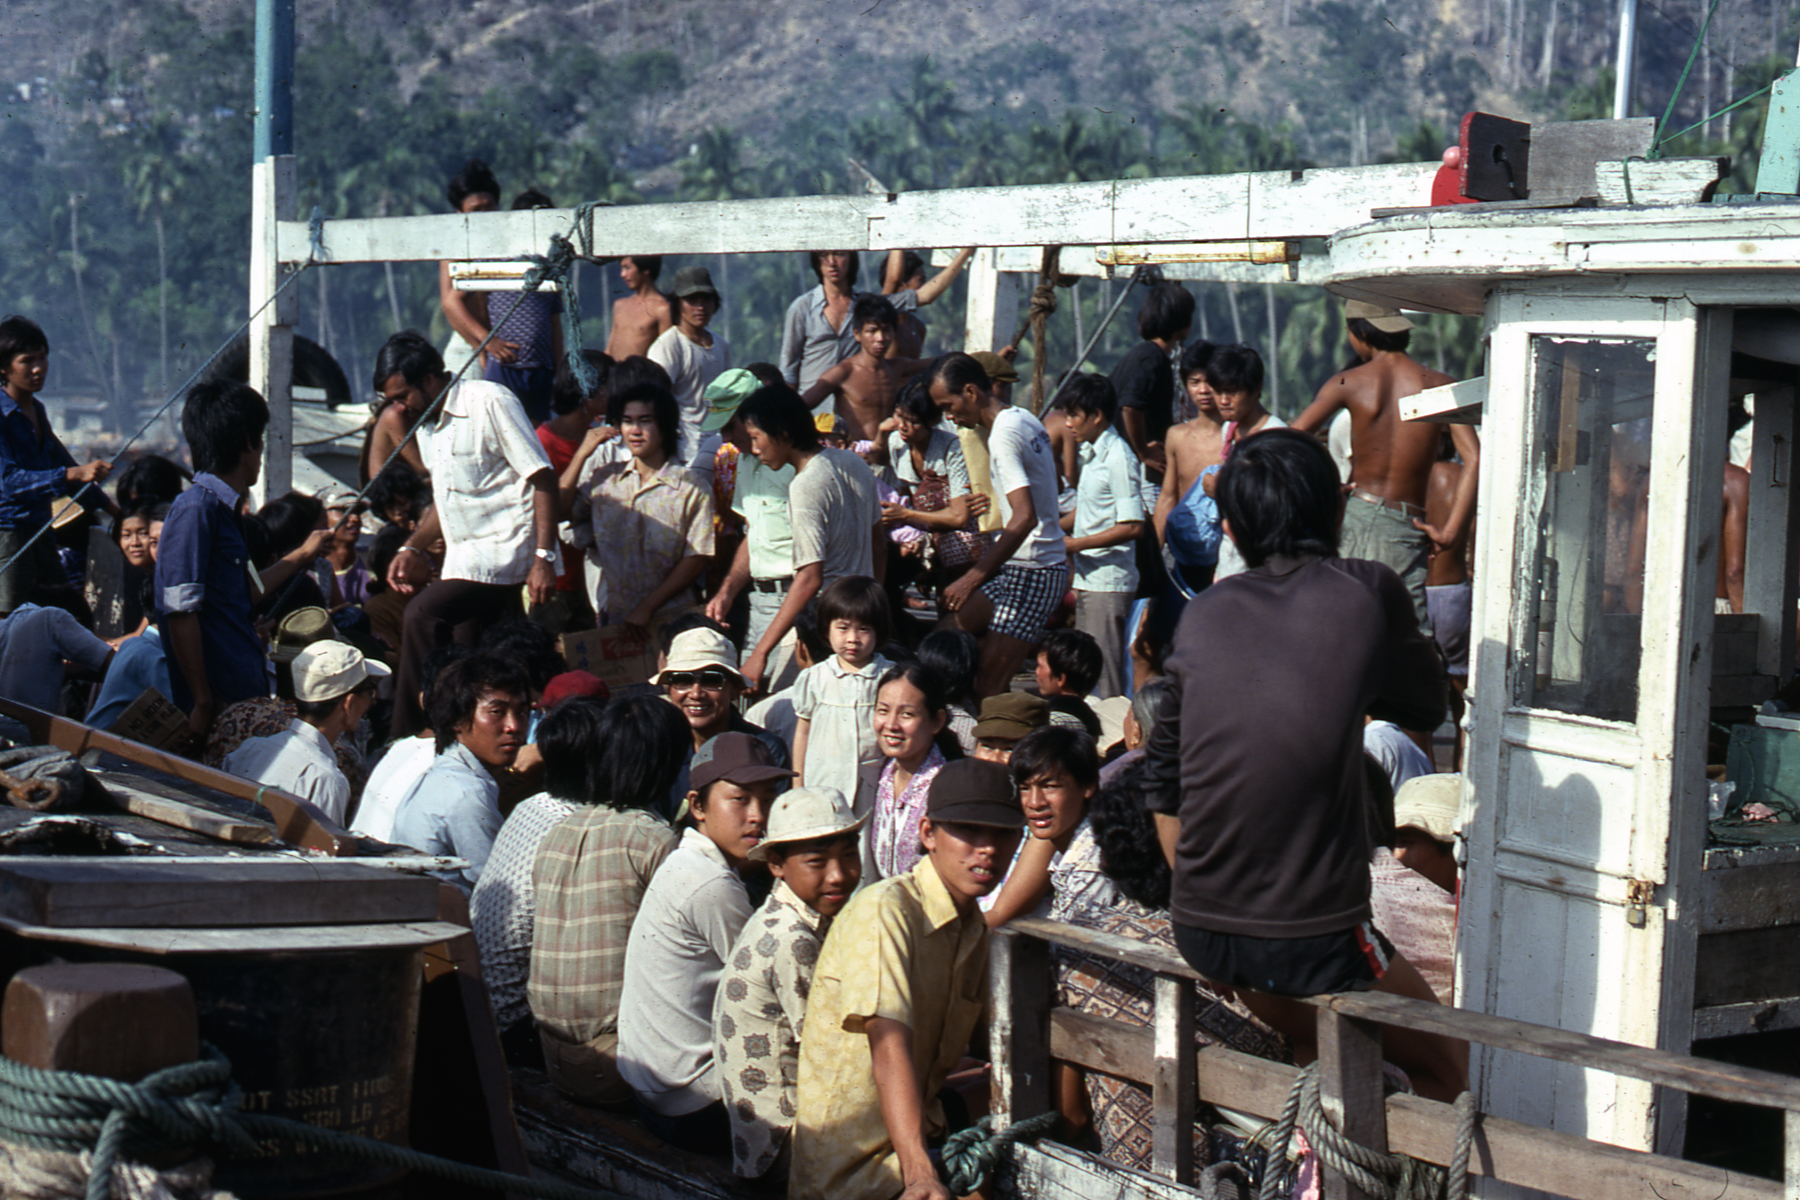 Vietnamese refugees leaving Pulau Bidong camp, 1979